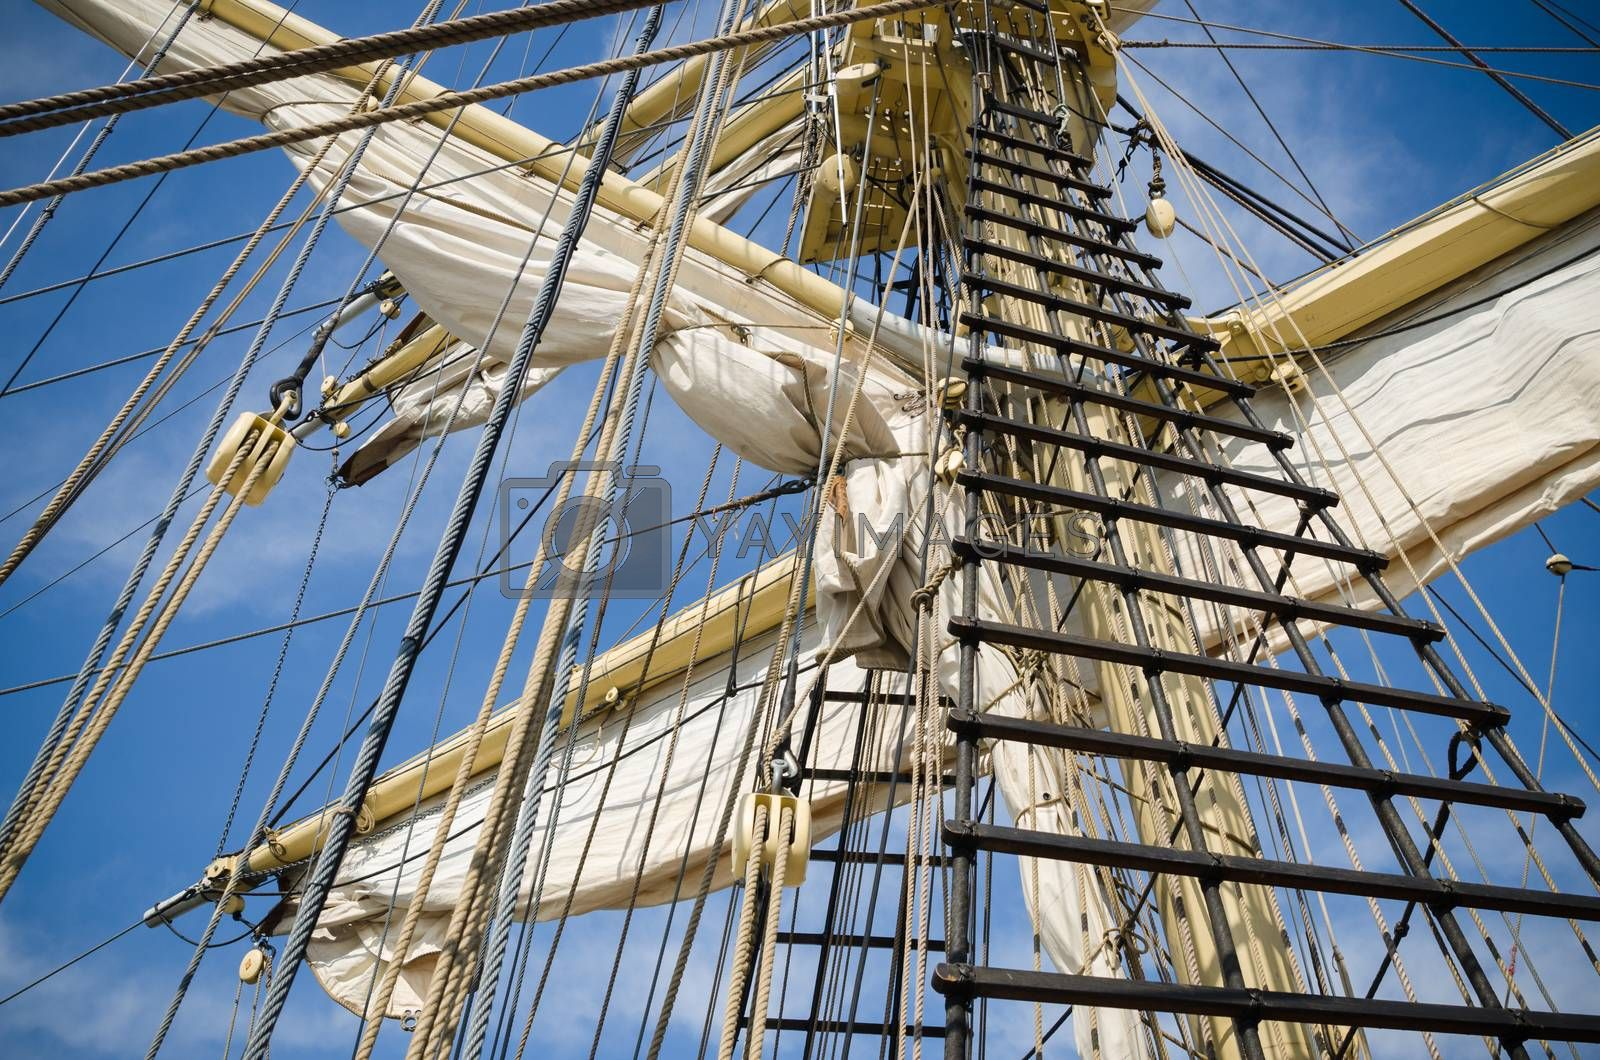 Royalty free image of Sails and tackles of a sailing vessel on a background of the sky by breeze09